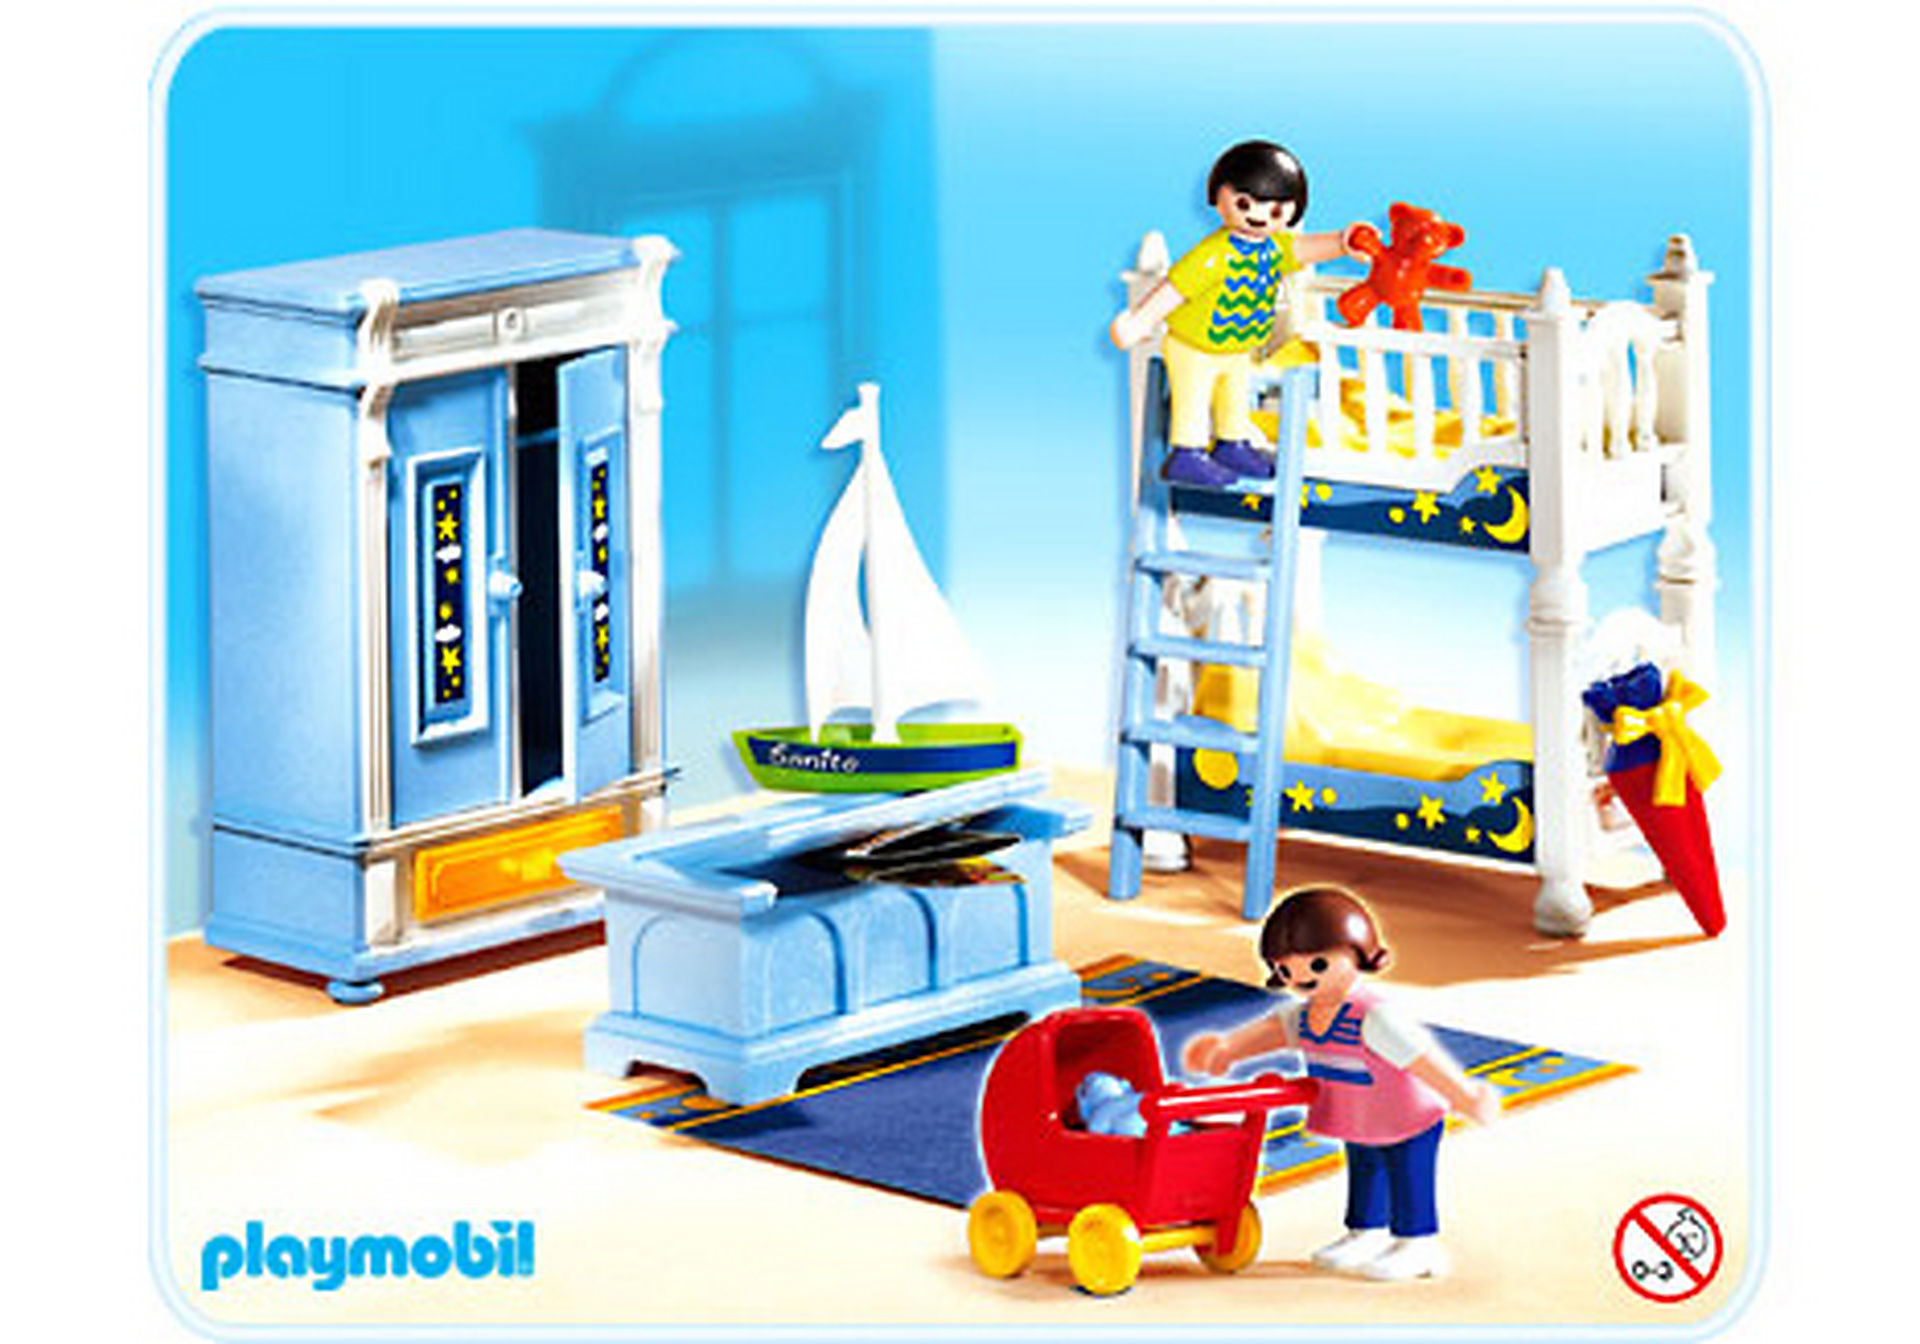 http://media.playmobil.com/i/playmobil/5328-A_product_detail/Kinderzimmer mit Stockbetten